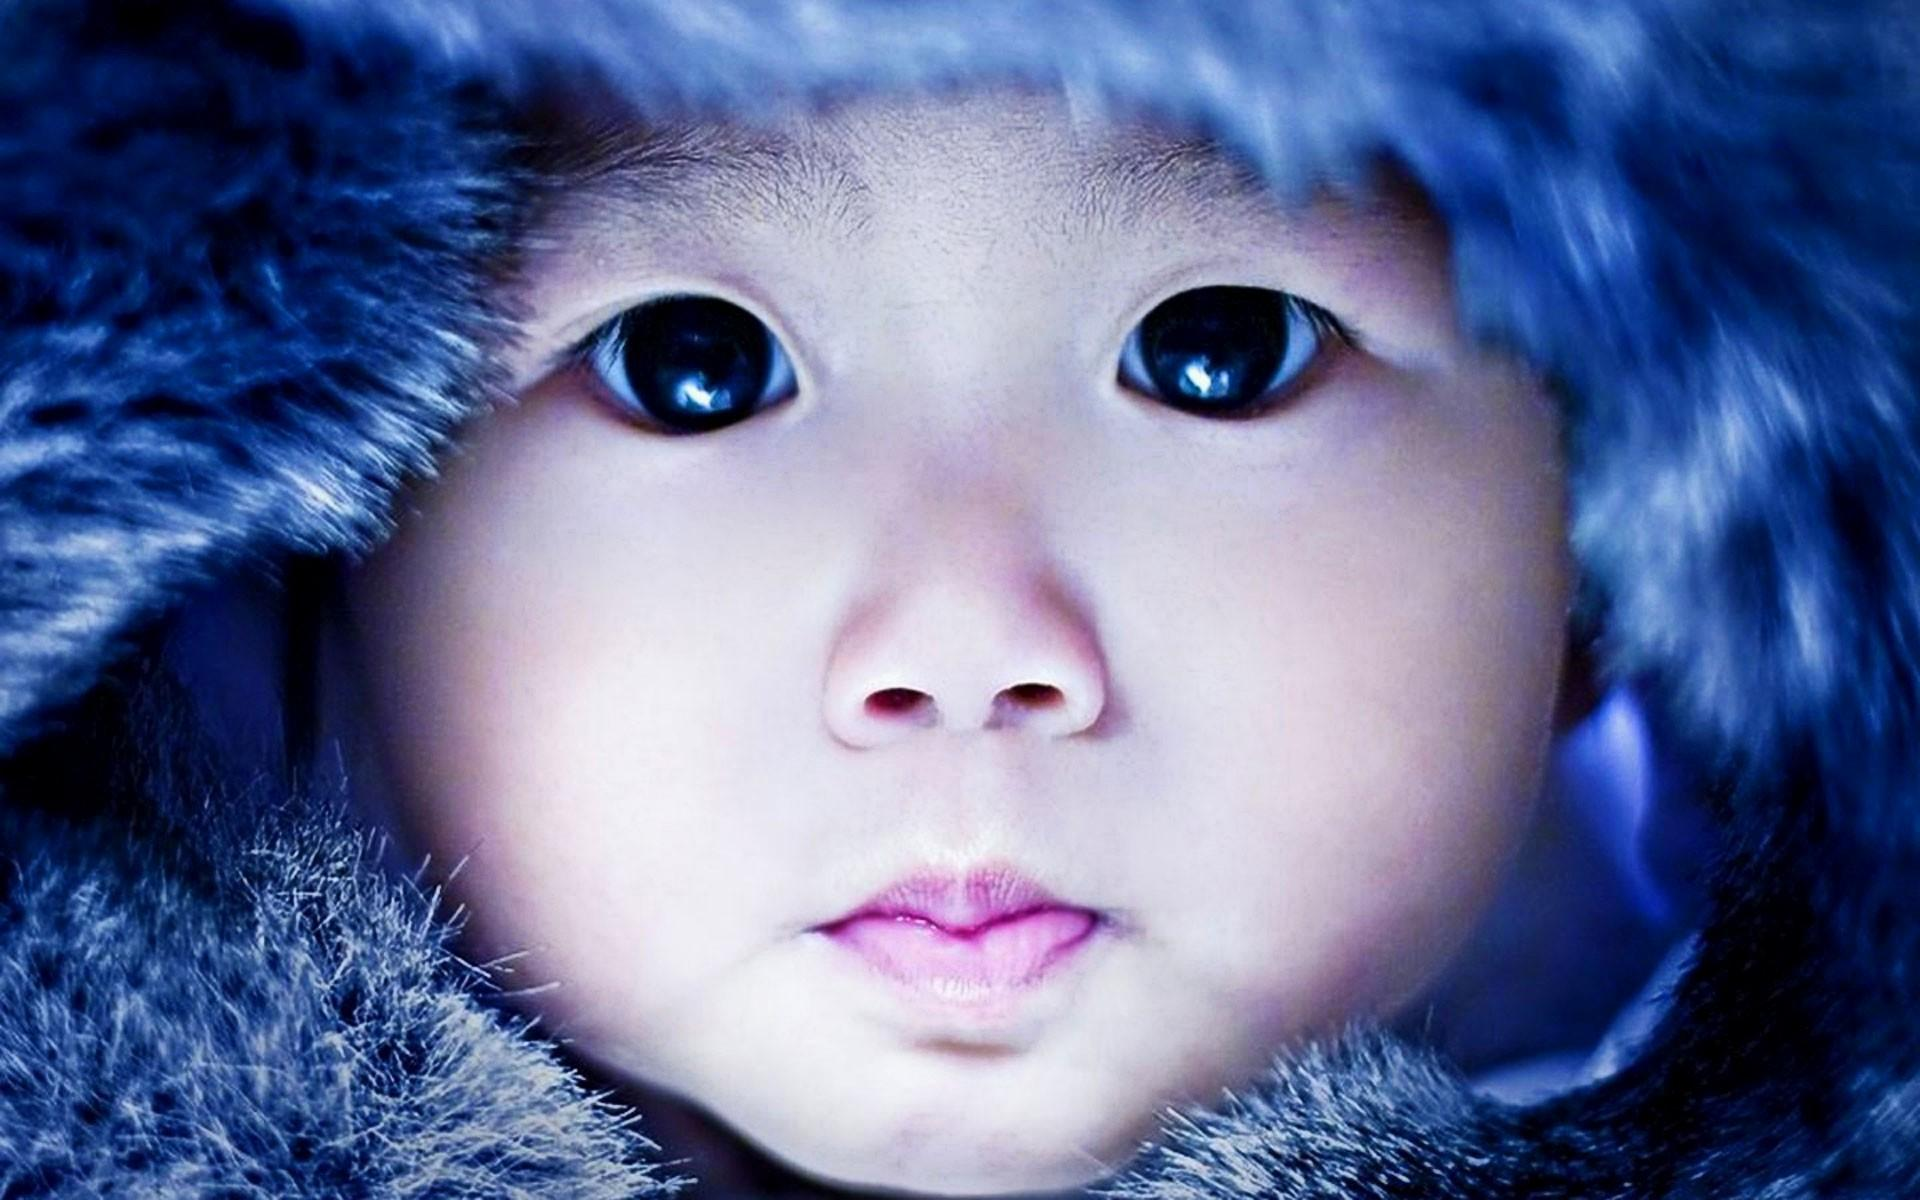 Adorable Cute Babies Wallpapers  1920x1200